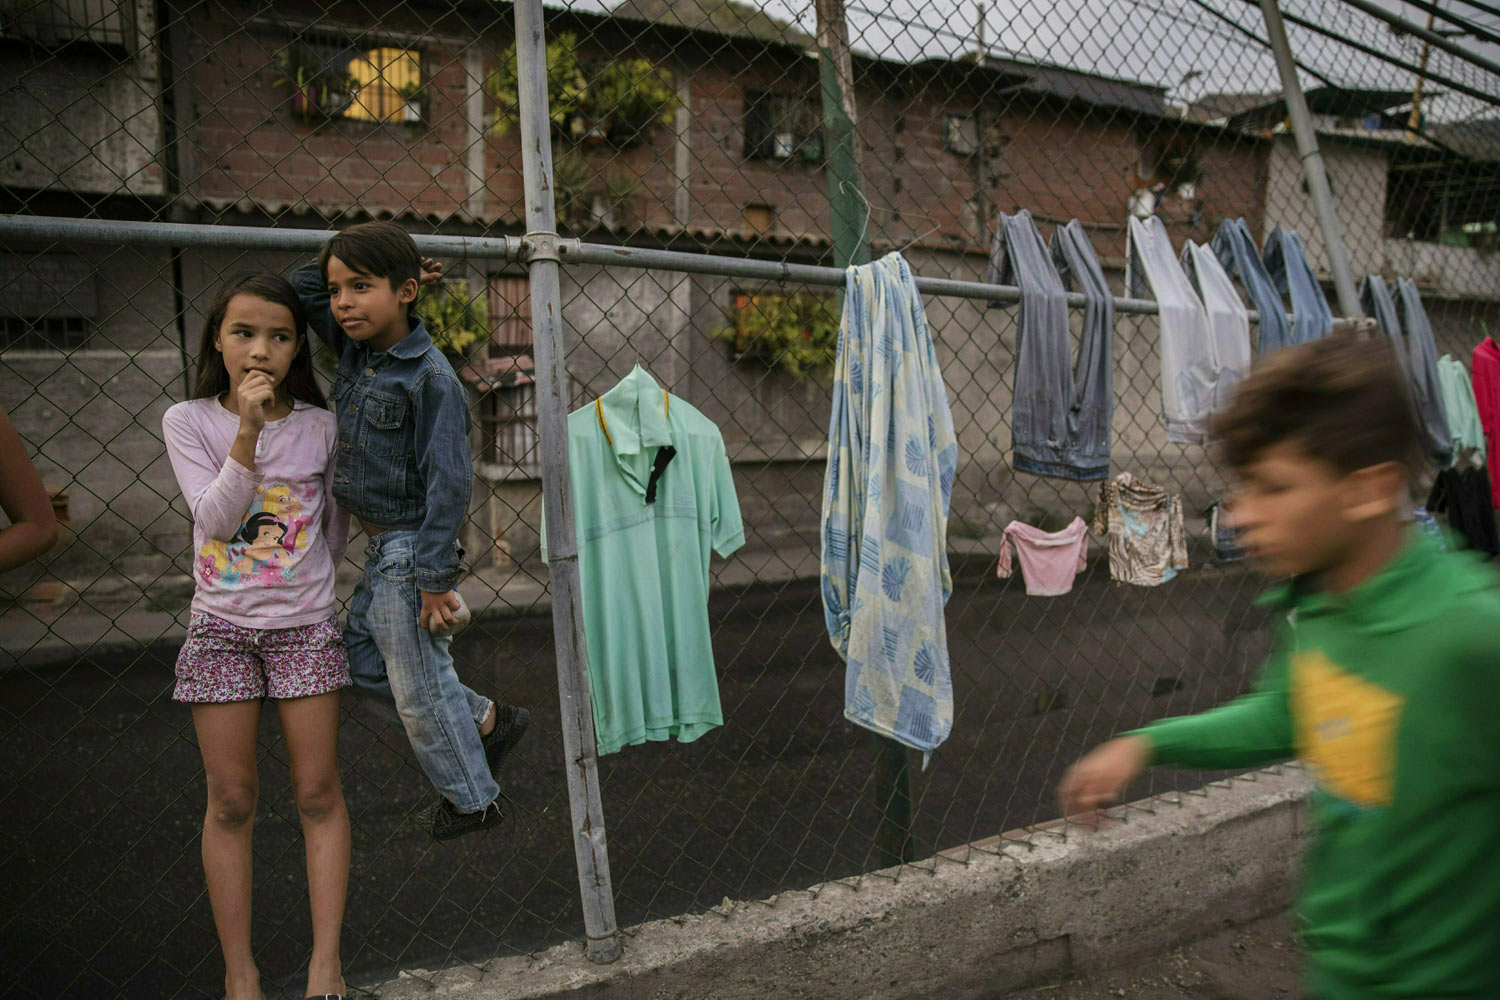 Valentina Gonzalez, 10, left, and her friend Engleston Gonzalez, 8, stand next to clothes drying on a fence in Caracas, Venezuela, Tuesday, Jan. 29, 2019. Venezuela's President Nicolas Maduro went on state television Tuesday to announce that he was beefing up the nation's defense by expanding Venezuela's civilian armed militia to 2 million members. The reserve force was created by the late Hugo Chavez to train civilians to assist the armed forces and defend the socialist revolution from attacks. (AP Photo/Rodrigo Abd)